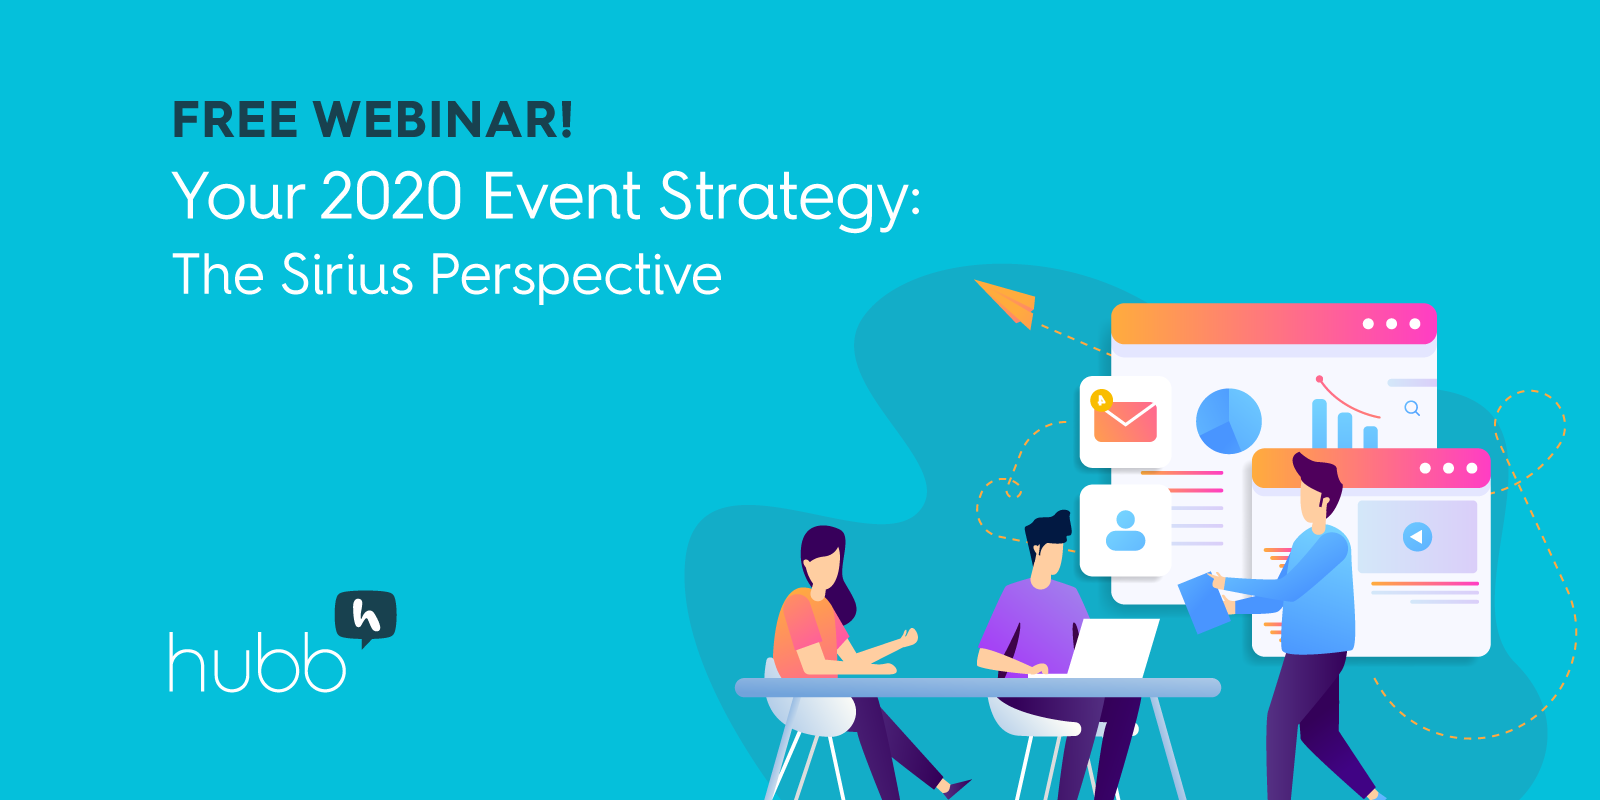 Your 2020 Event Strategy: The Sirius Perspective